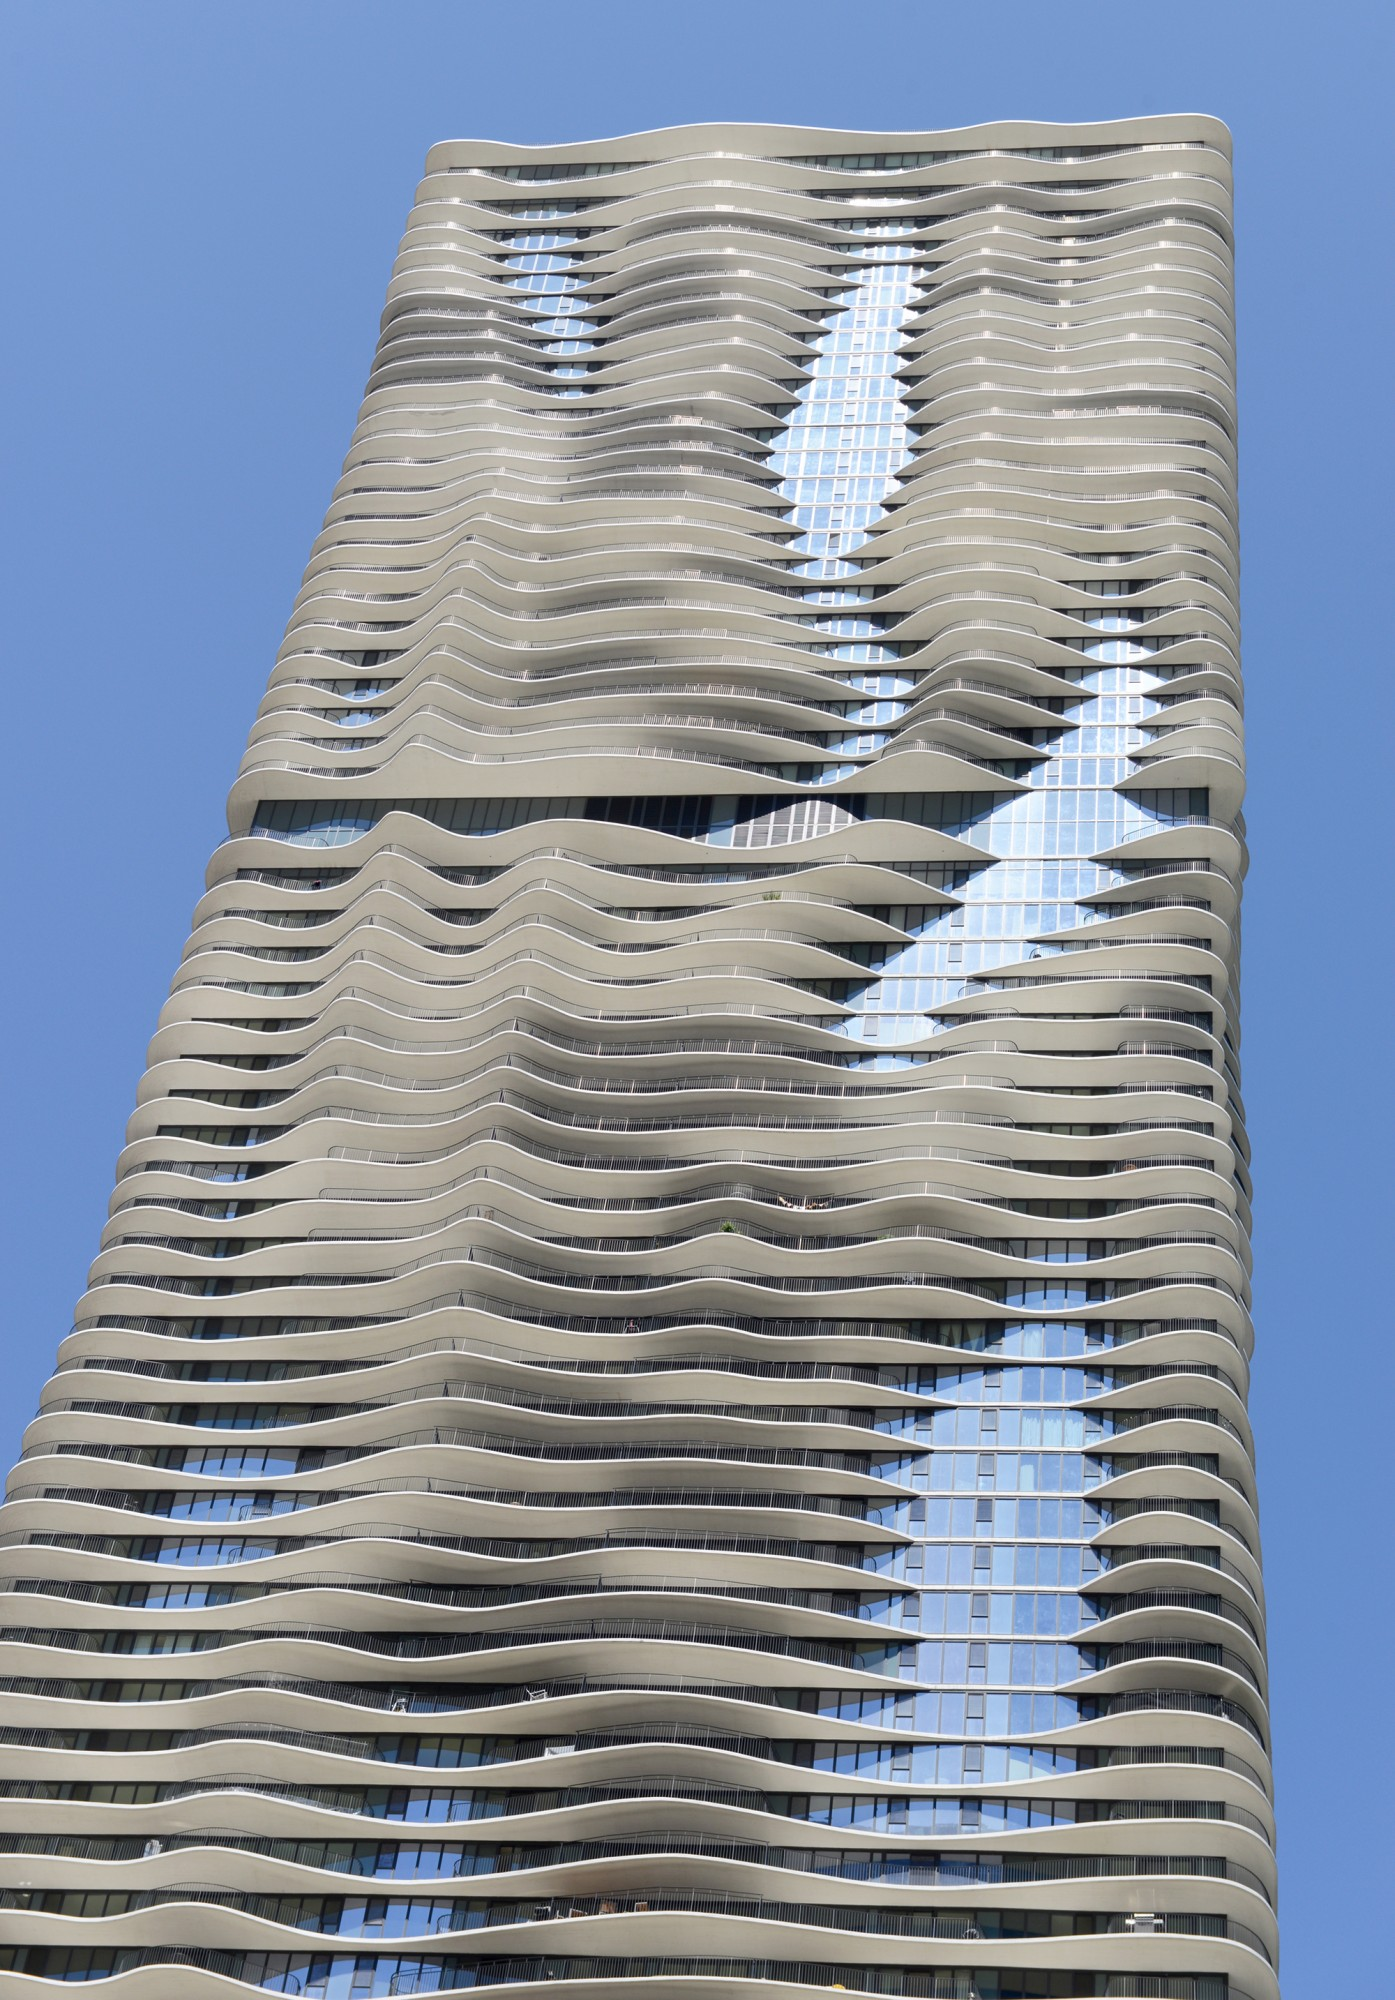 Architecture Buildings In Chicago aqua · buildings of chicago · chicago architecture foundation - caf